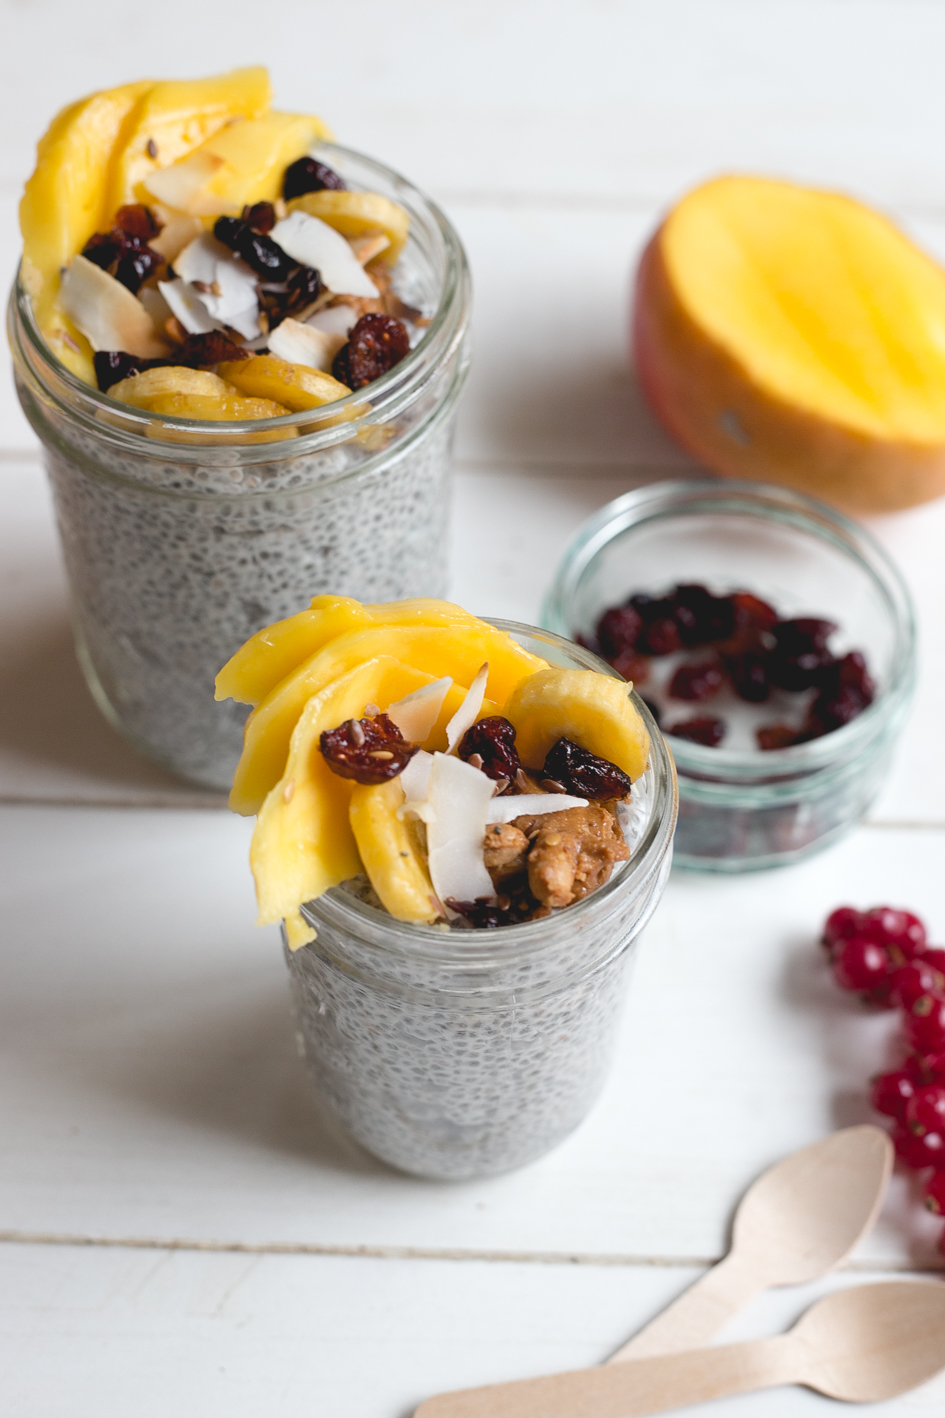 chia Pudding with lait de coco